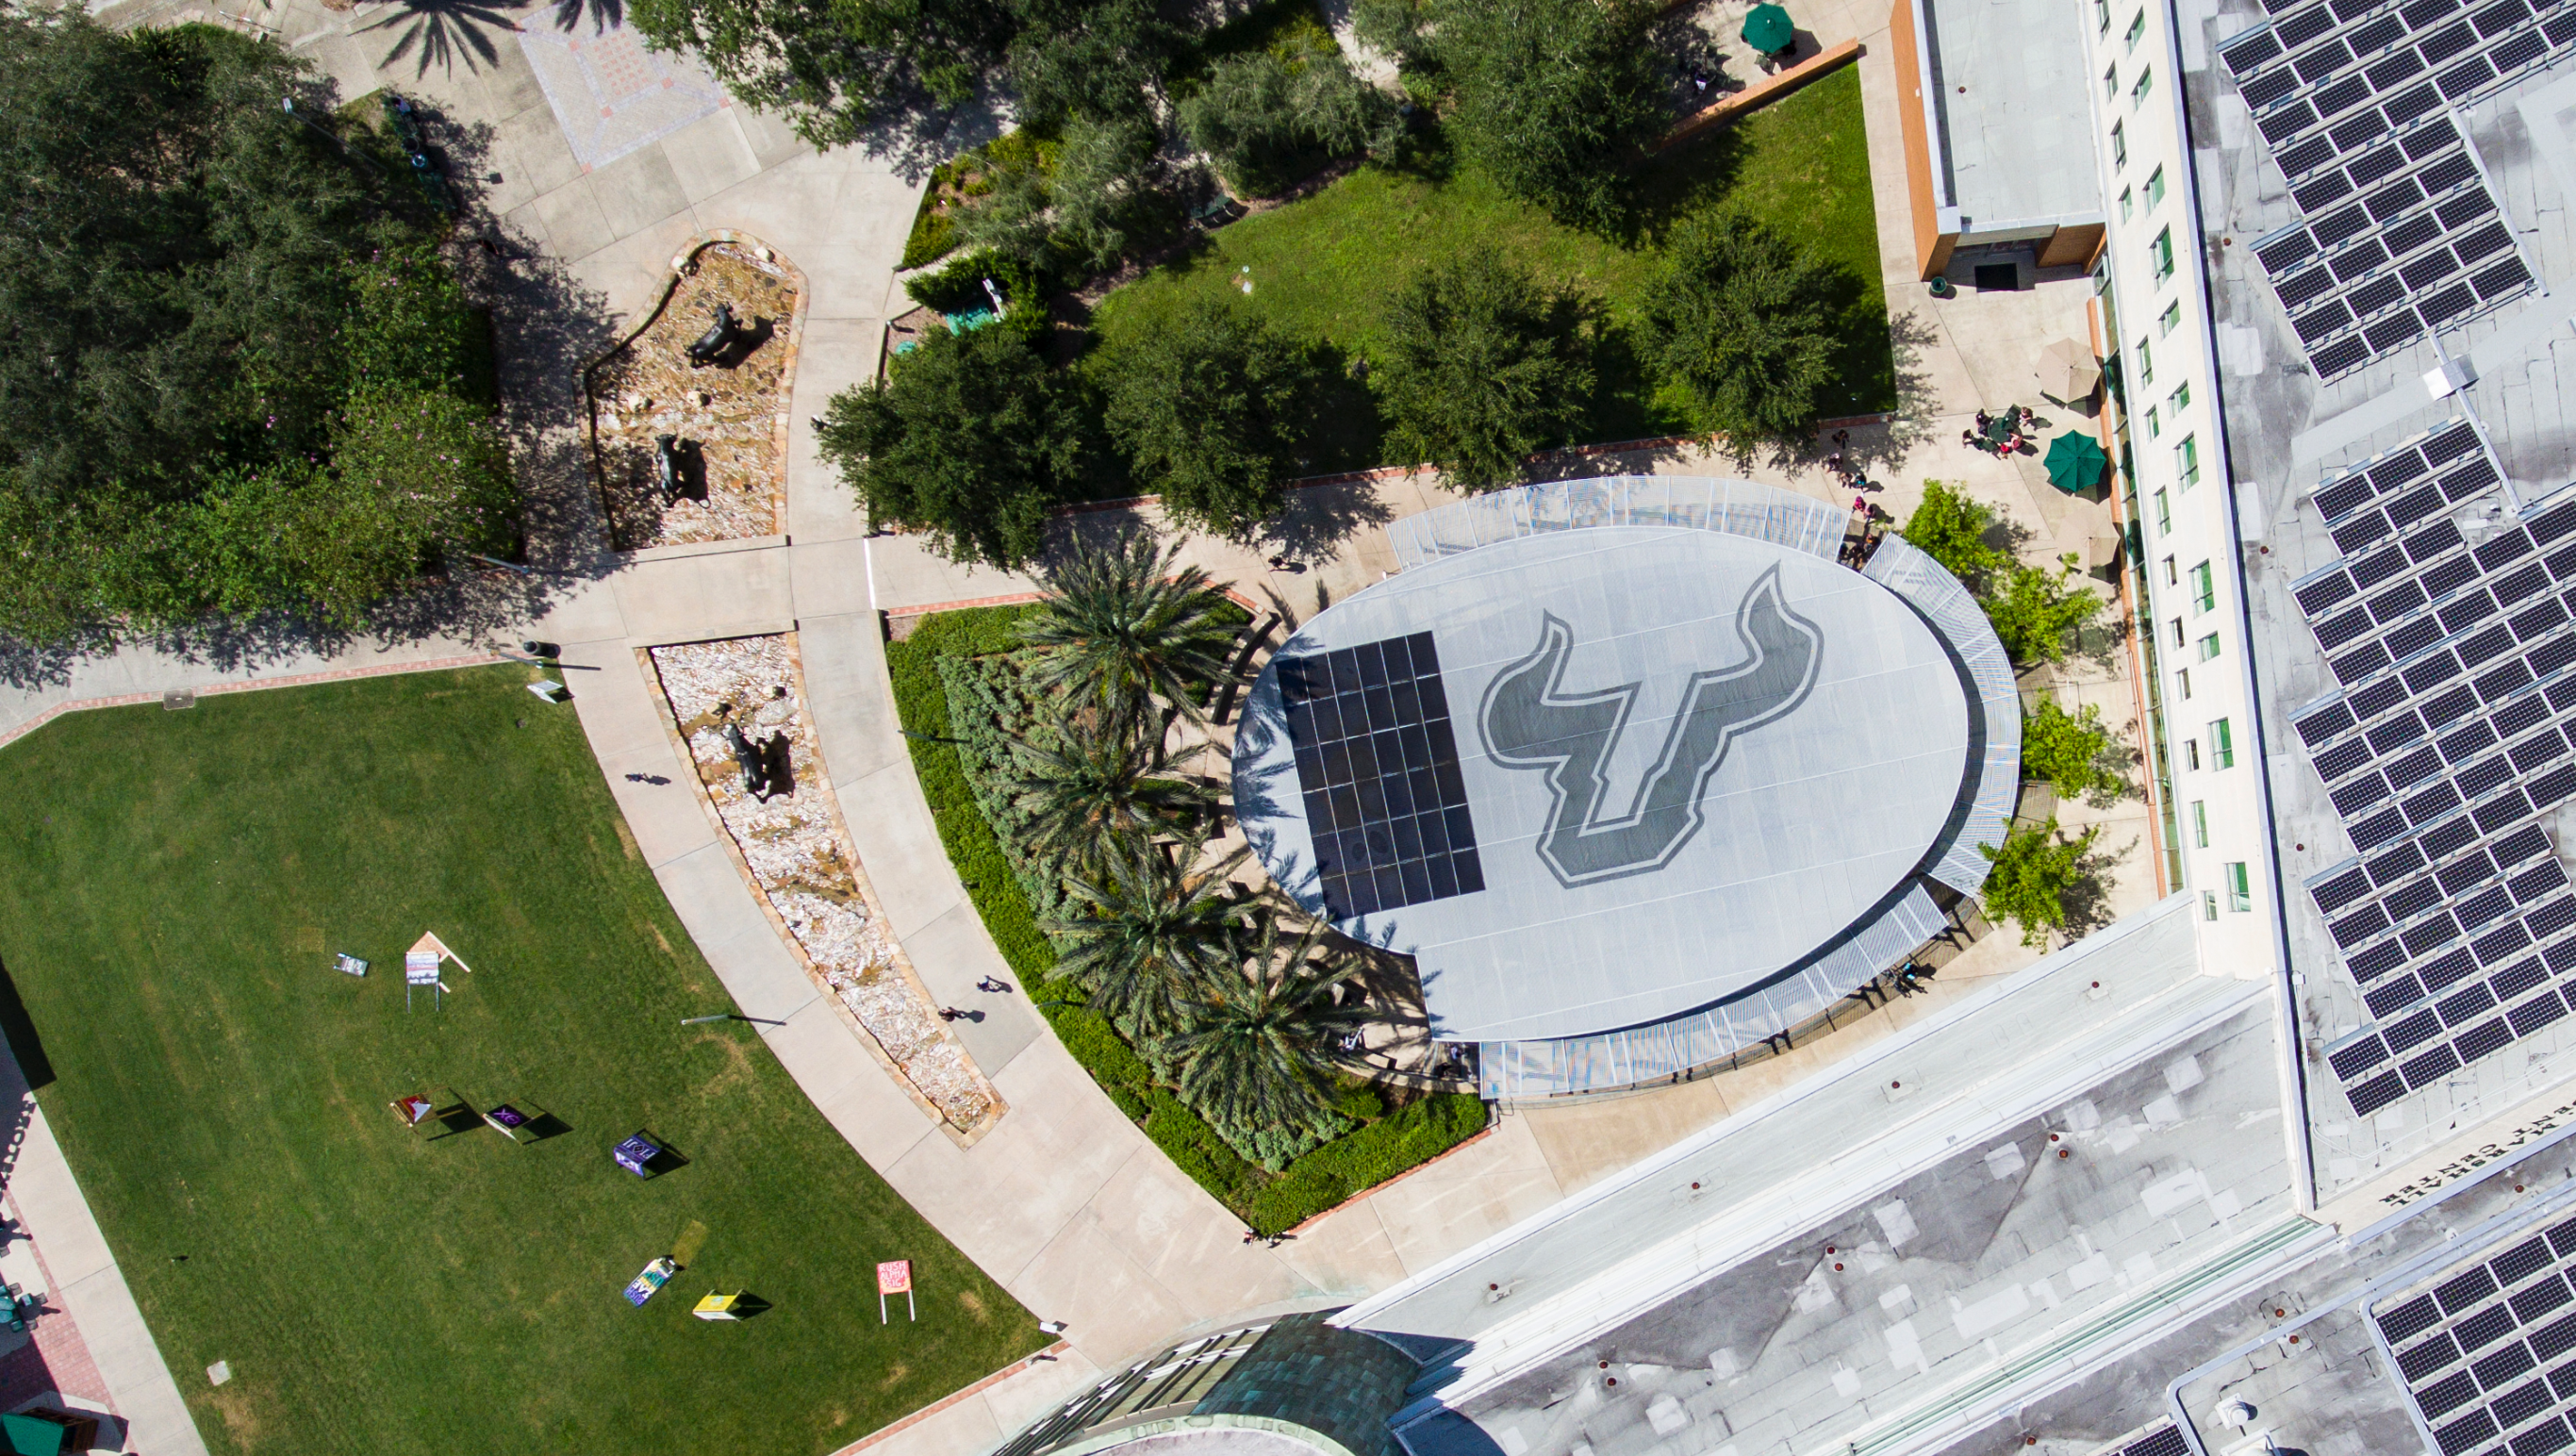 Aerial view of the USF campus showcasing the bull sign to symbolize One USF.